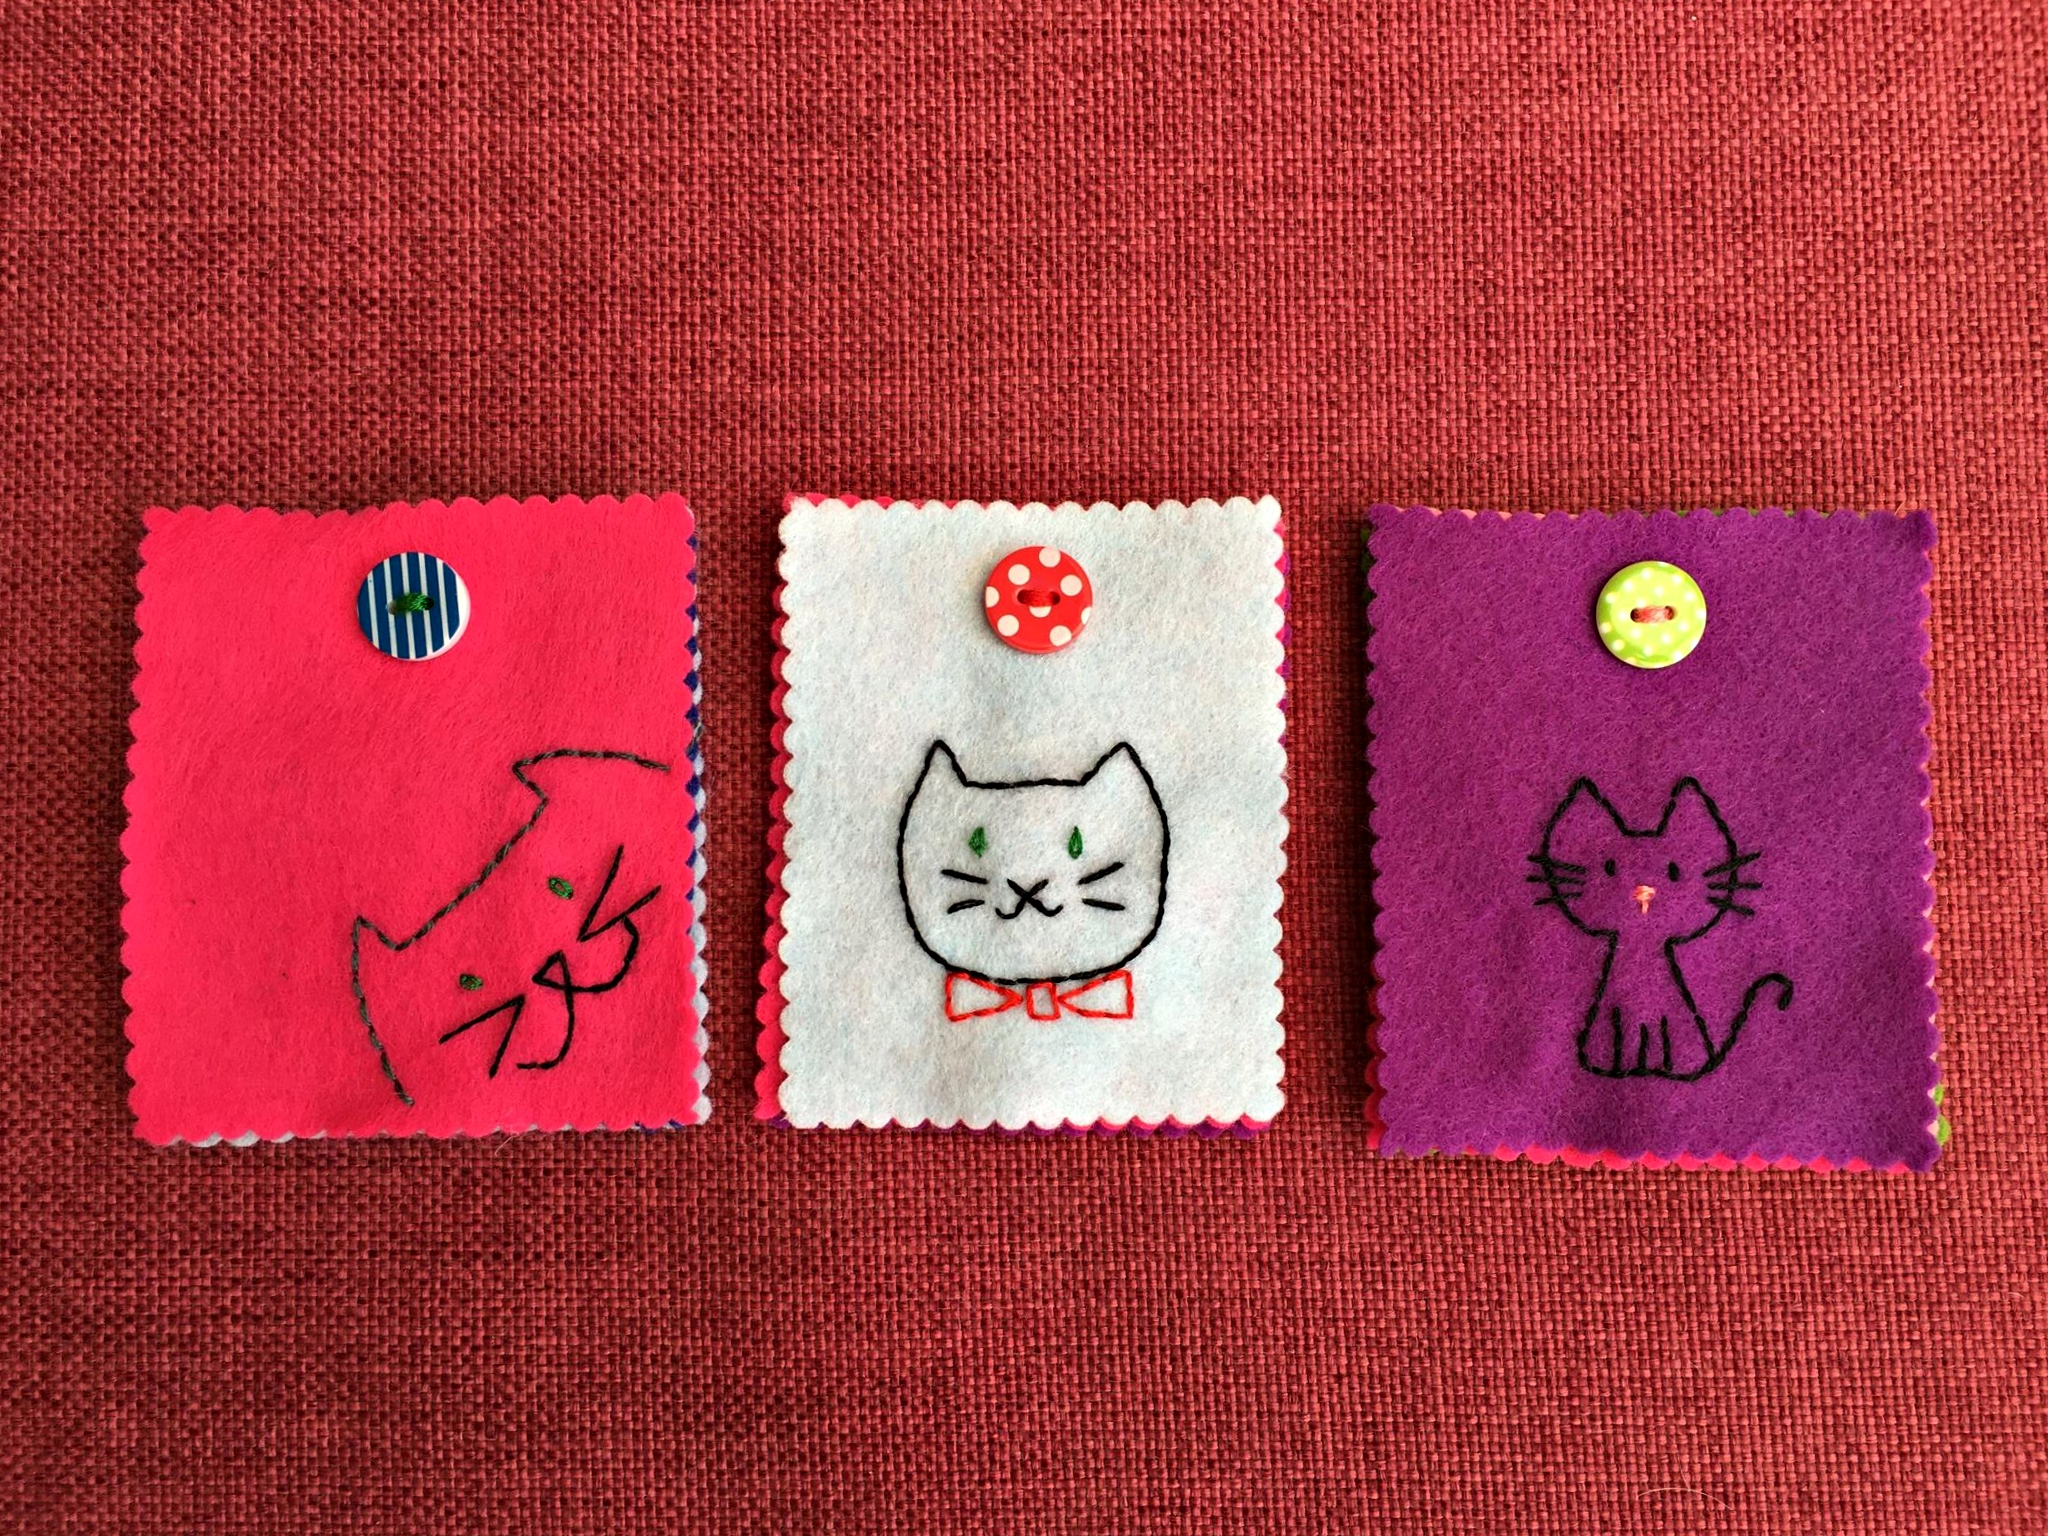 SALE - ONE LEFT! Pins & needles case for cat lovers!